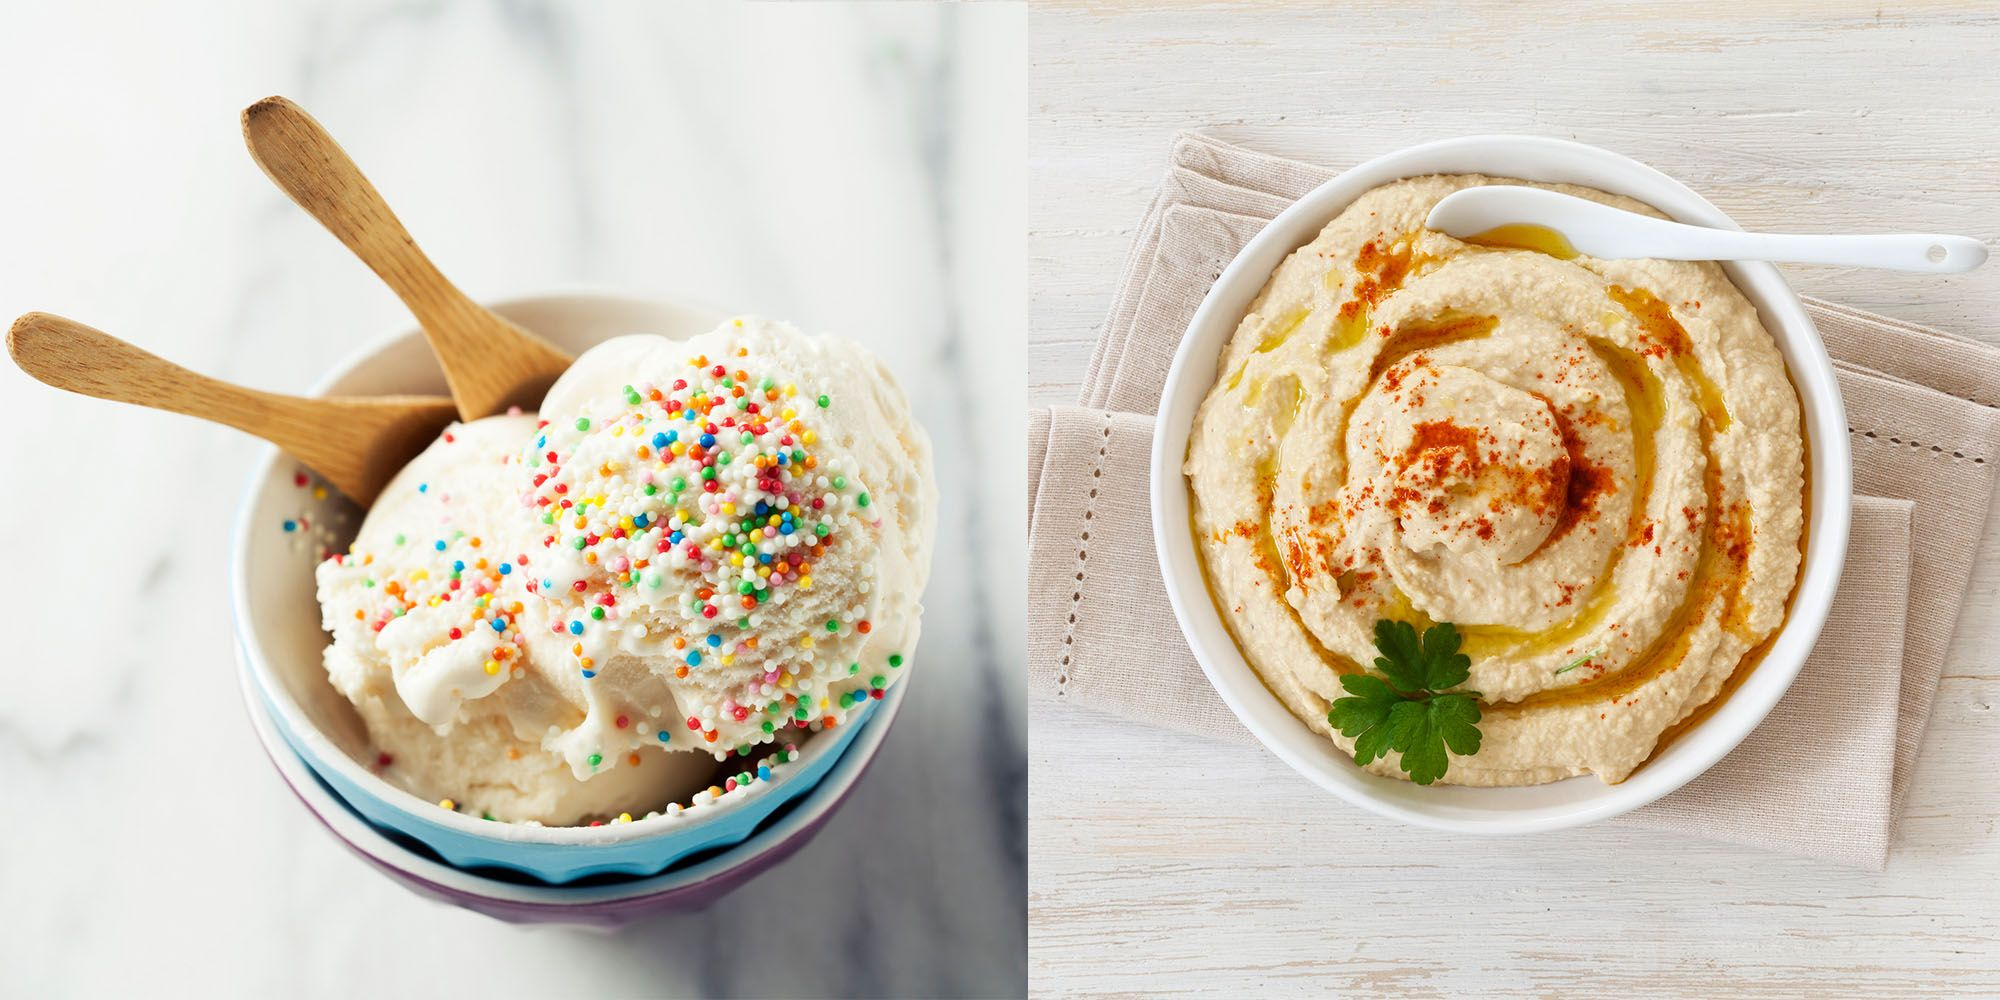 Ice cream and hummus